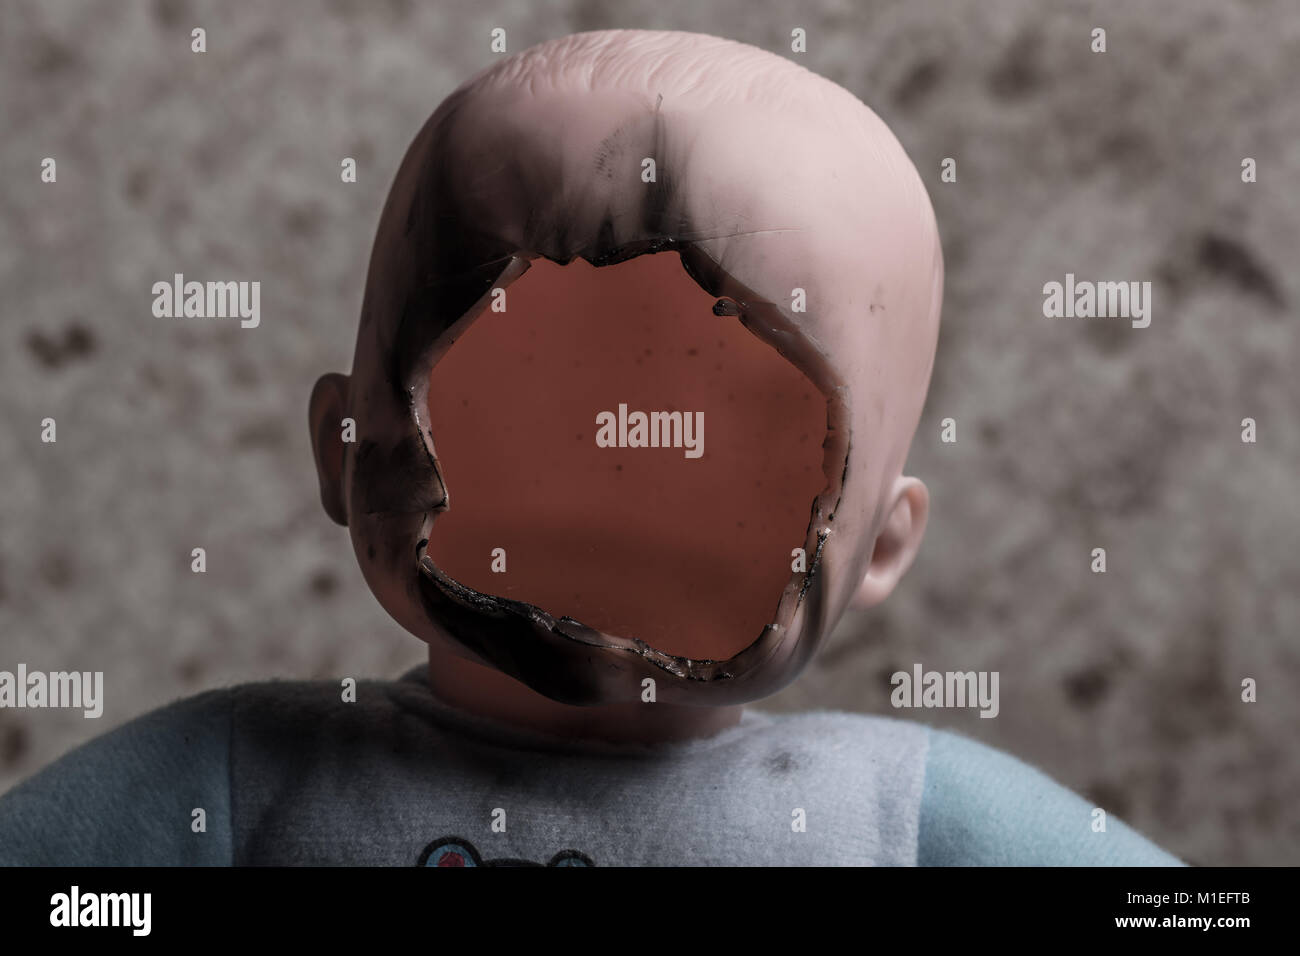 Child Doll with Its Face Cutted Off and Burned on Grunge Background - Stock Image